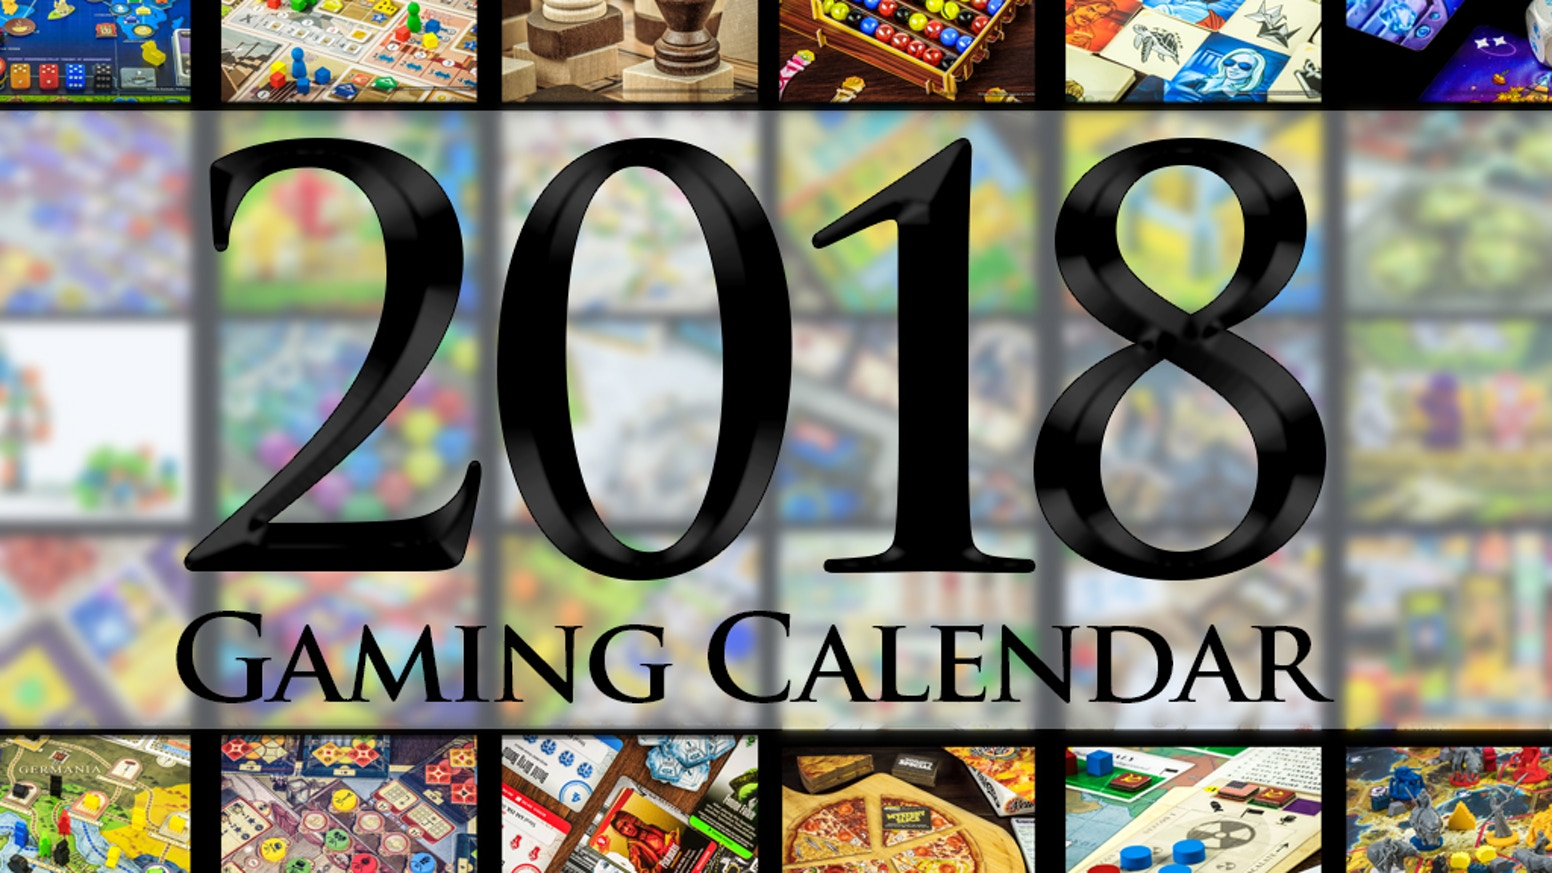 A 2018 Calendar featuring some of the coolest and prettiest board games of all time.